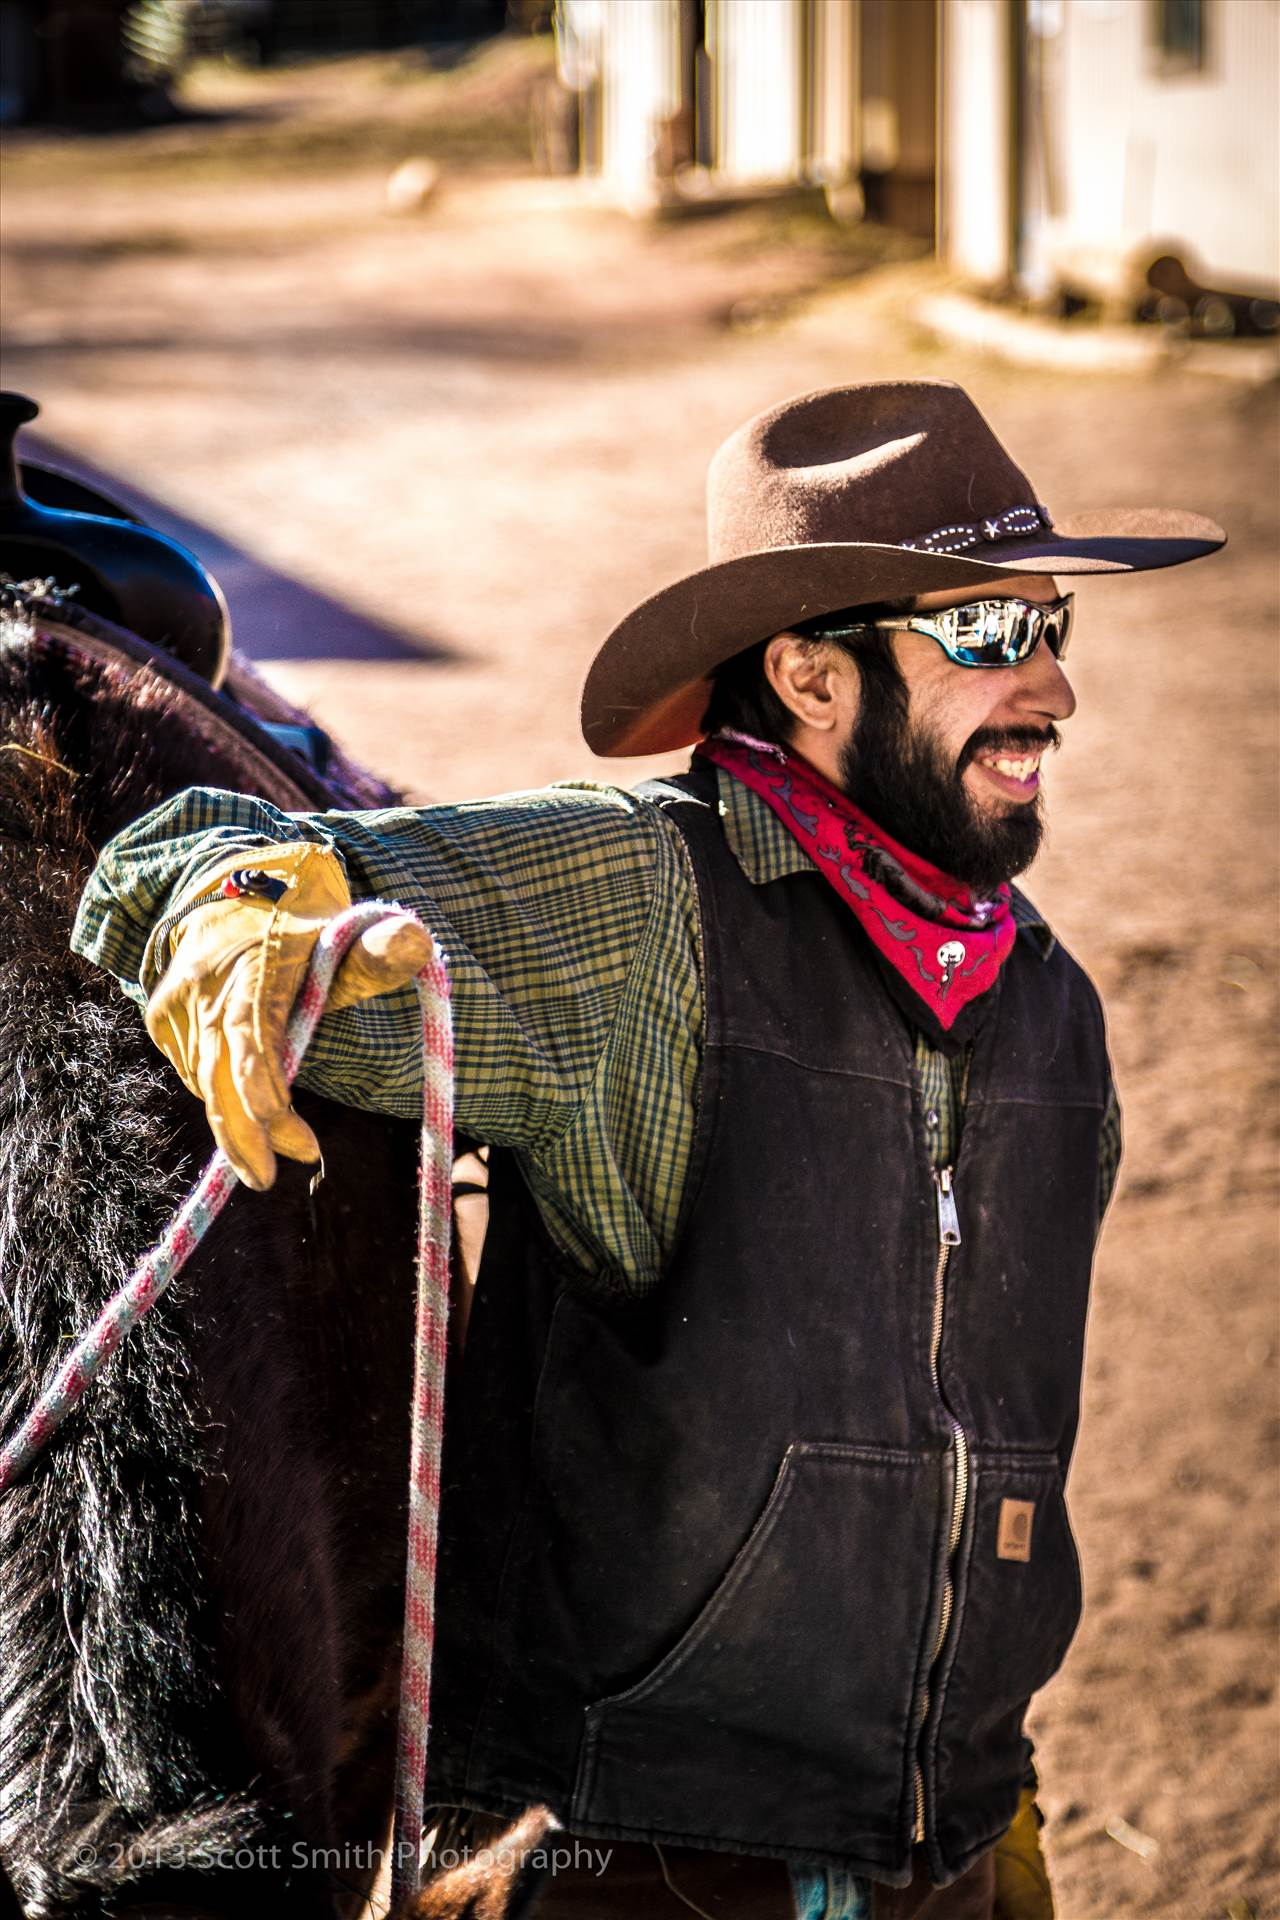 Garden of the Gods Ranch Hand - Helping load the family up on the horses for a ride through the Garden of the Gods. by D Scott Smith